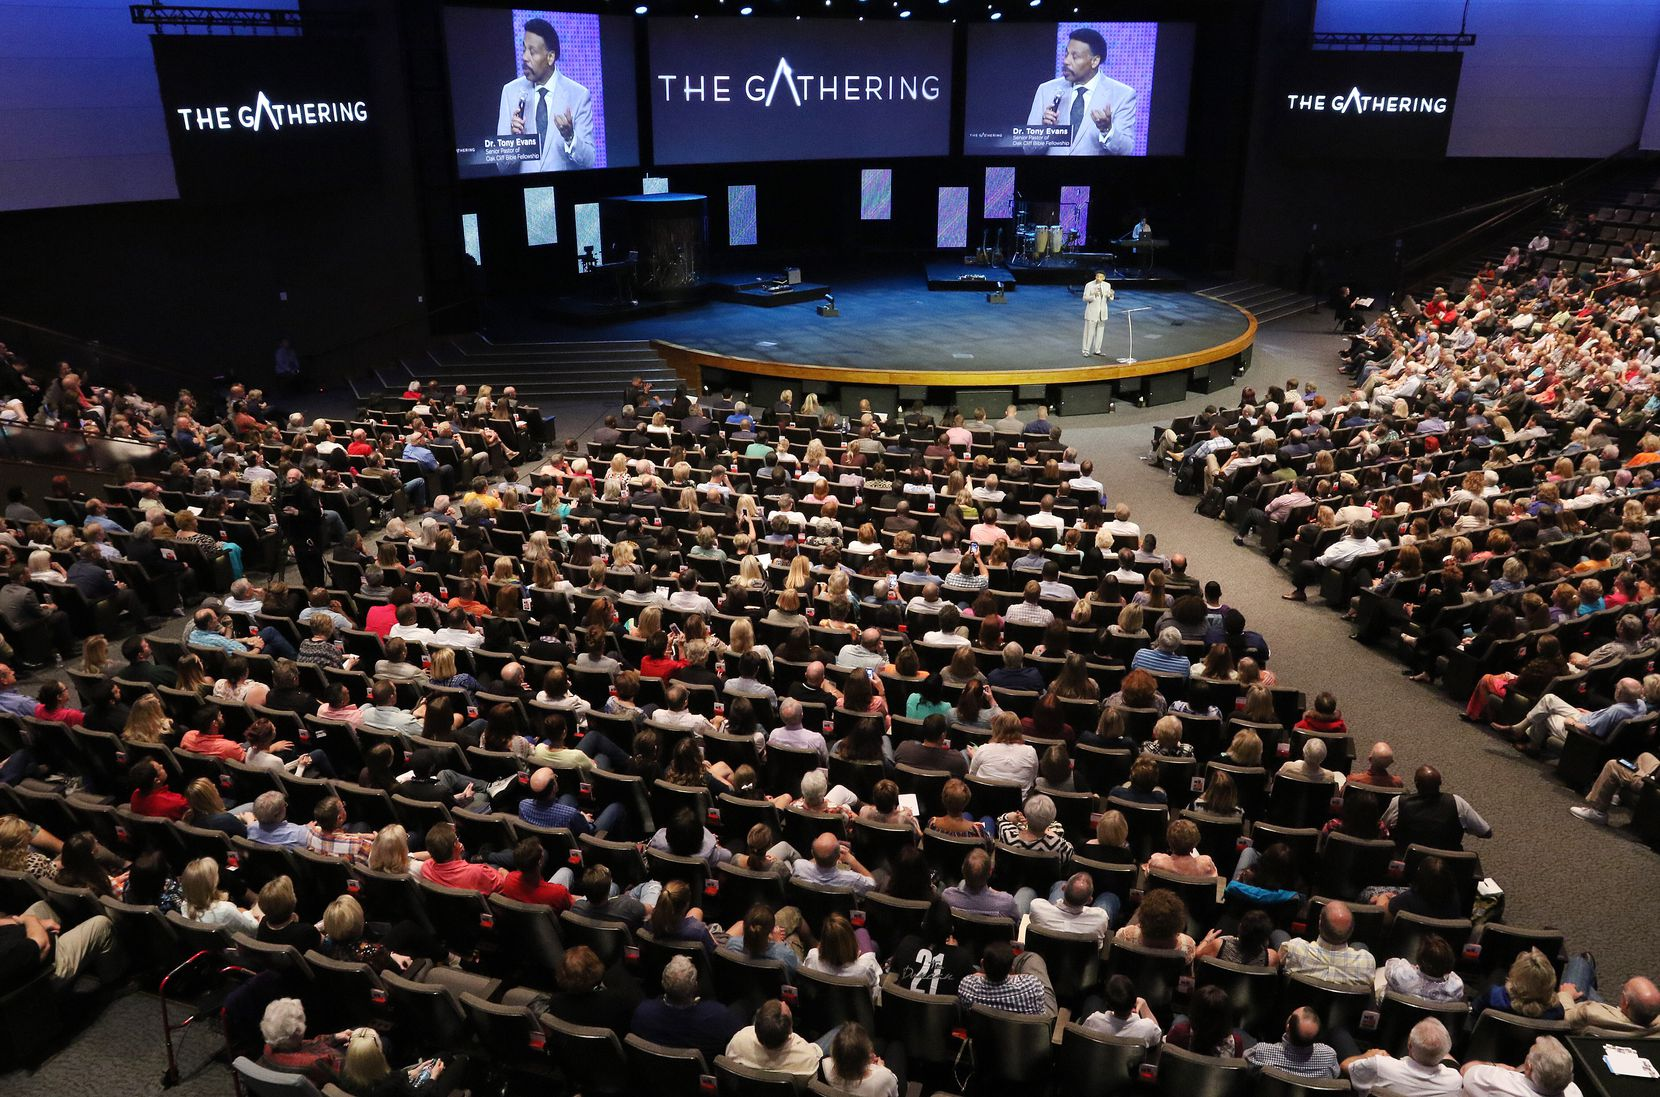 Christian leaders from across America came together for a day of pray and solemn assembly to call the nation to return to God. The event was held at Gateway Church in Southlake on Sept. 21, 2016.  (Irwin Thompson/Dallas Morning News)